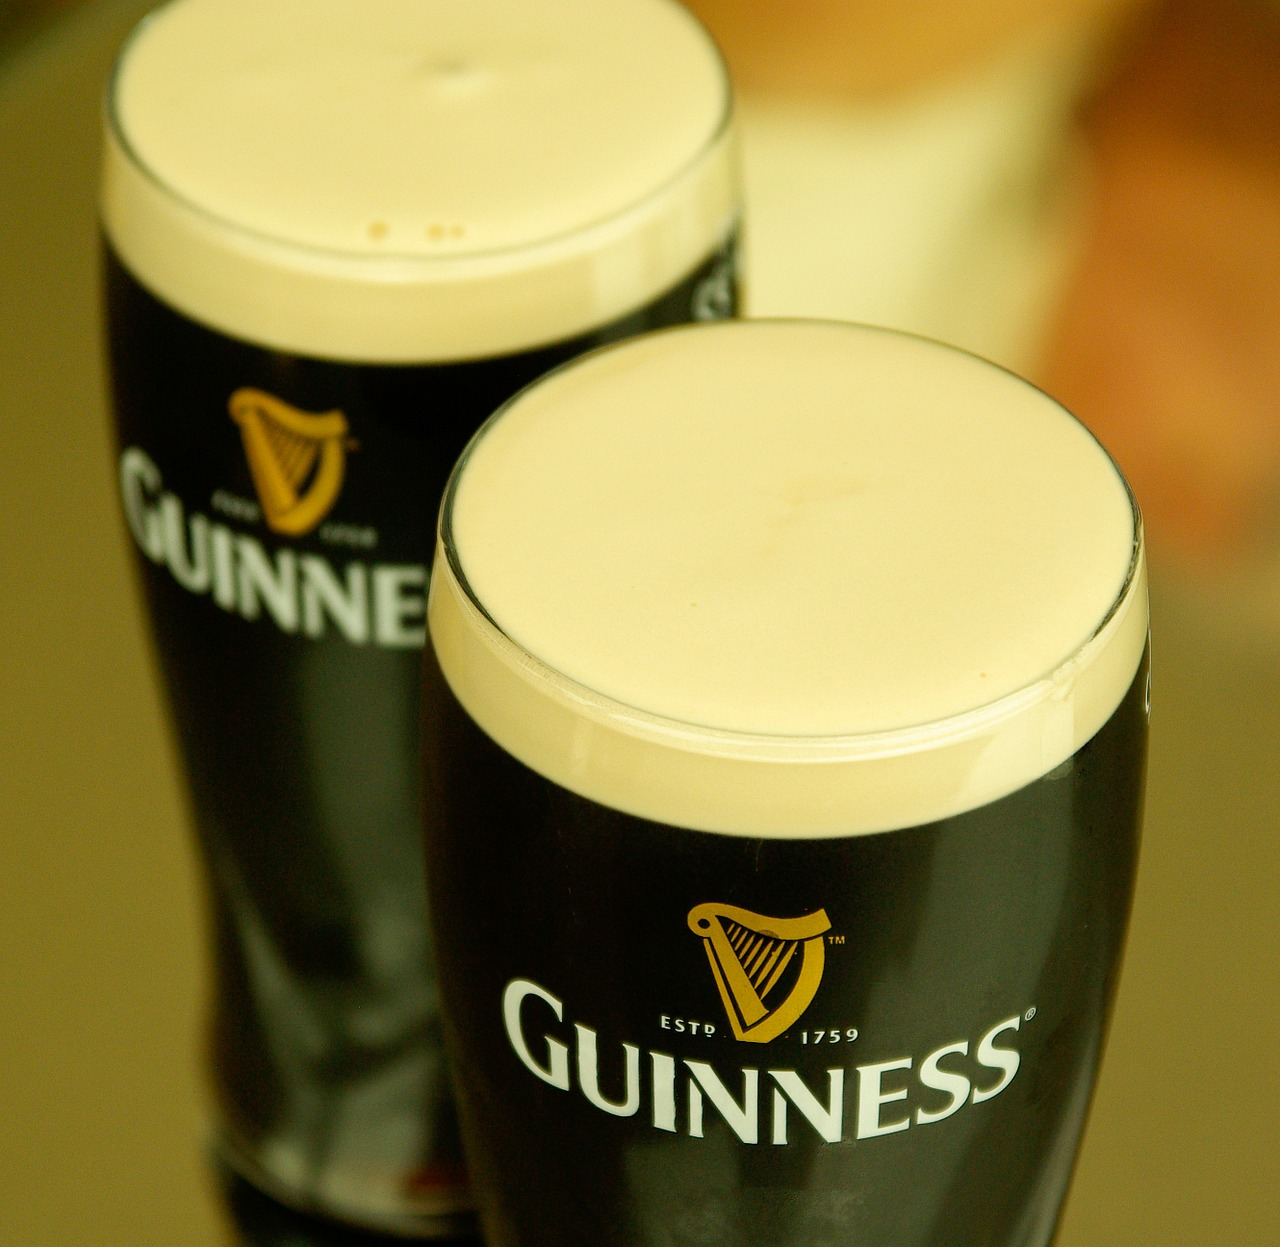 Groove bar, Crown is shouting you a Guinness if your name contains any variant of Patrick